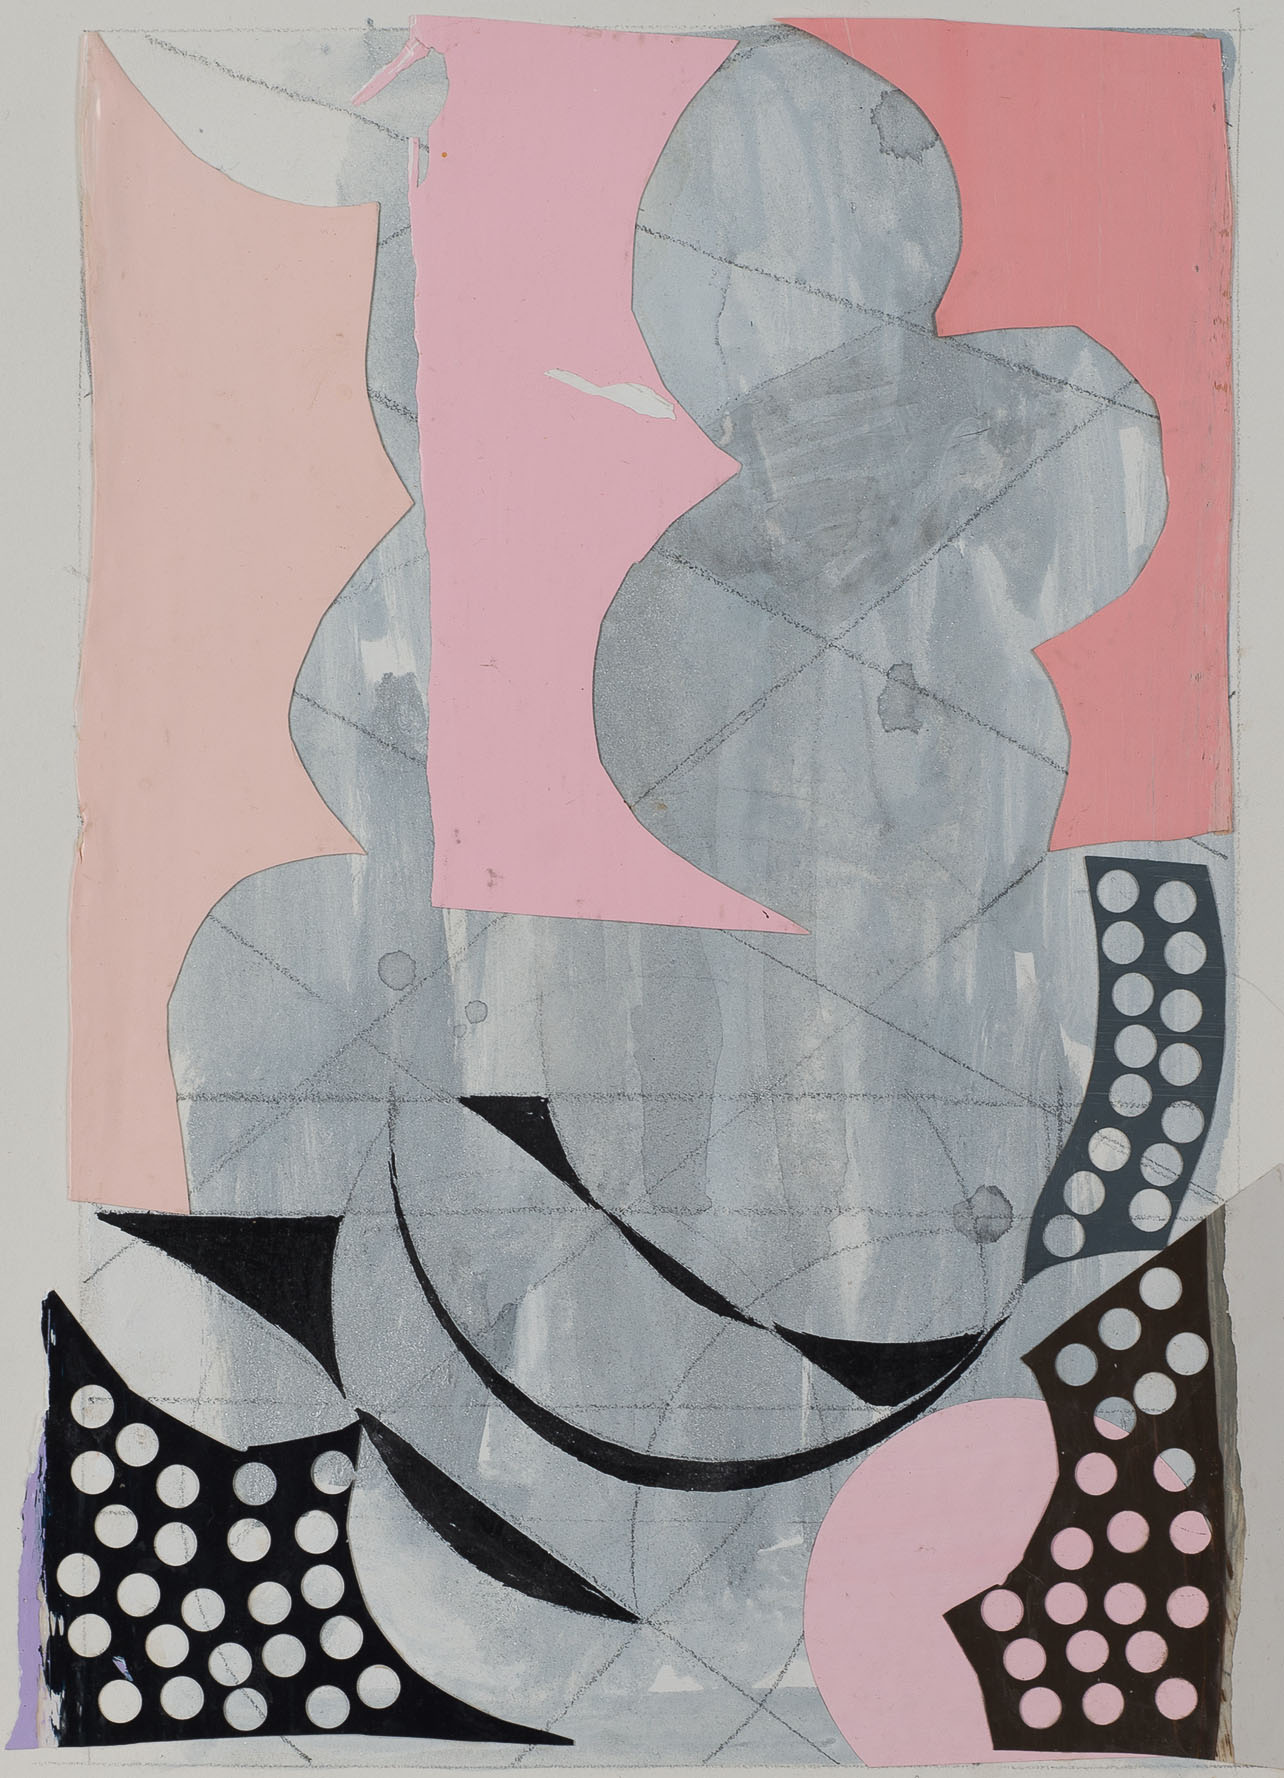 Peter Young,  #44 - 1989 , 1989, Acrylic and collage on paper, 15 x 11.5 inches (38.1 x 29.2 cm)